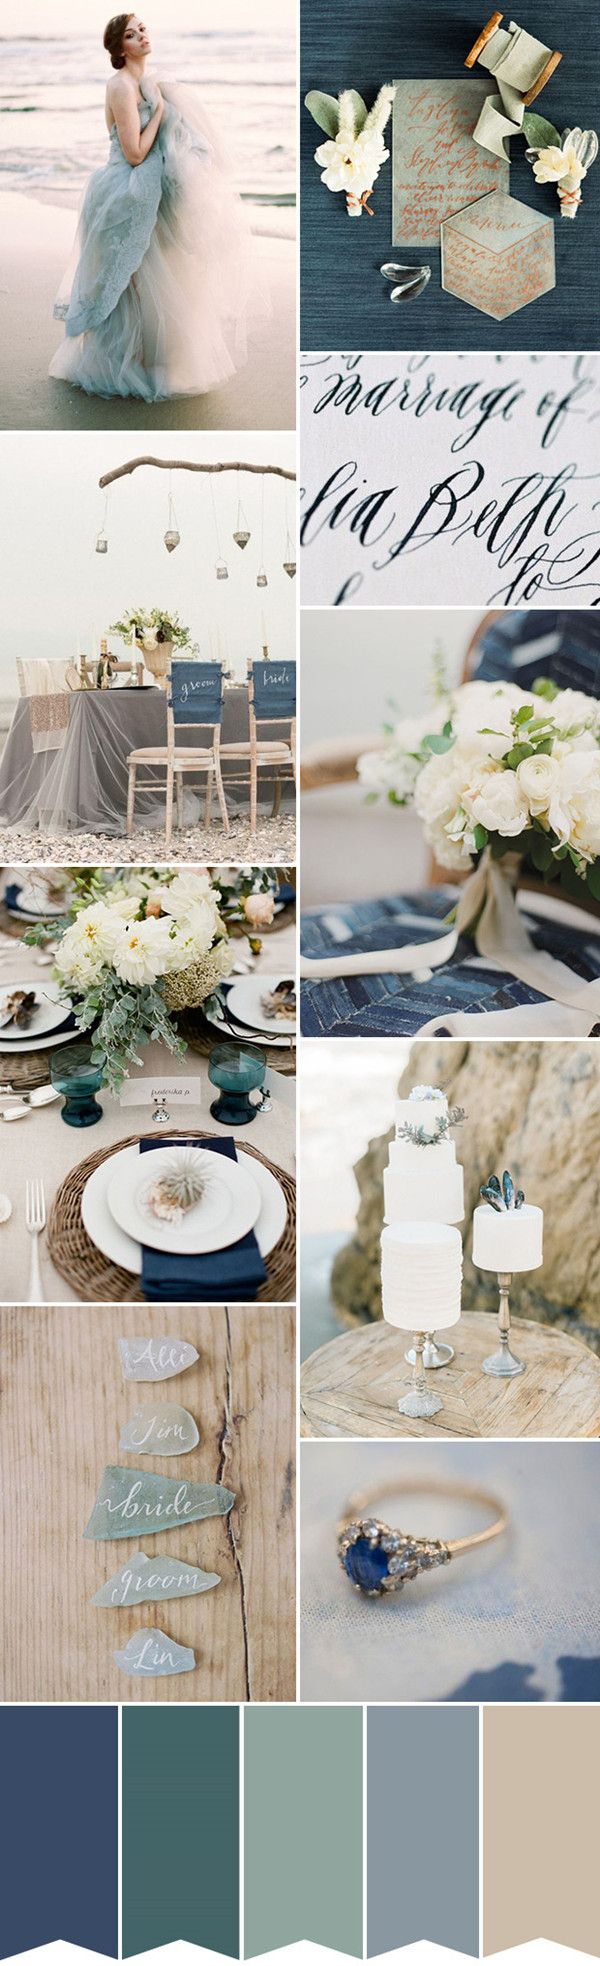 seaside blues and greens 2016 trending wedding color palette